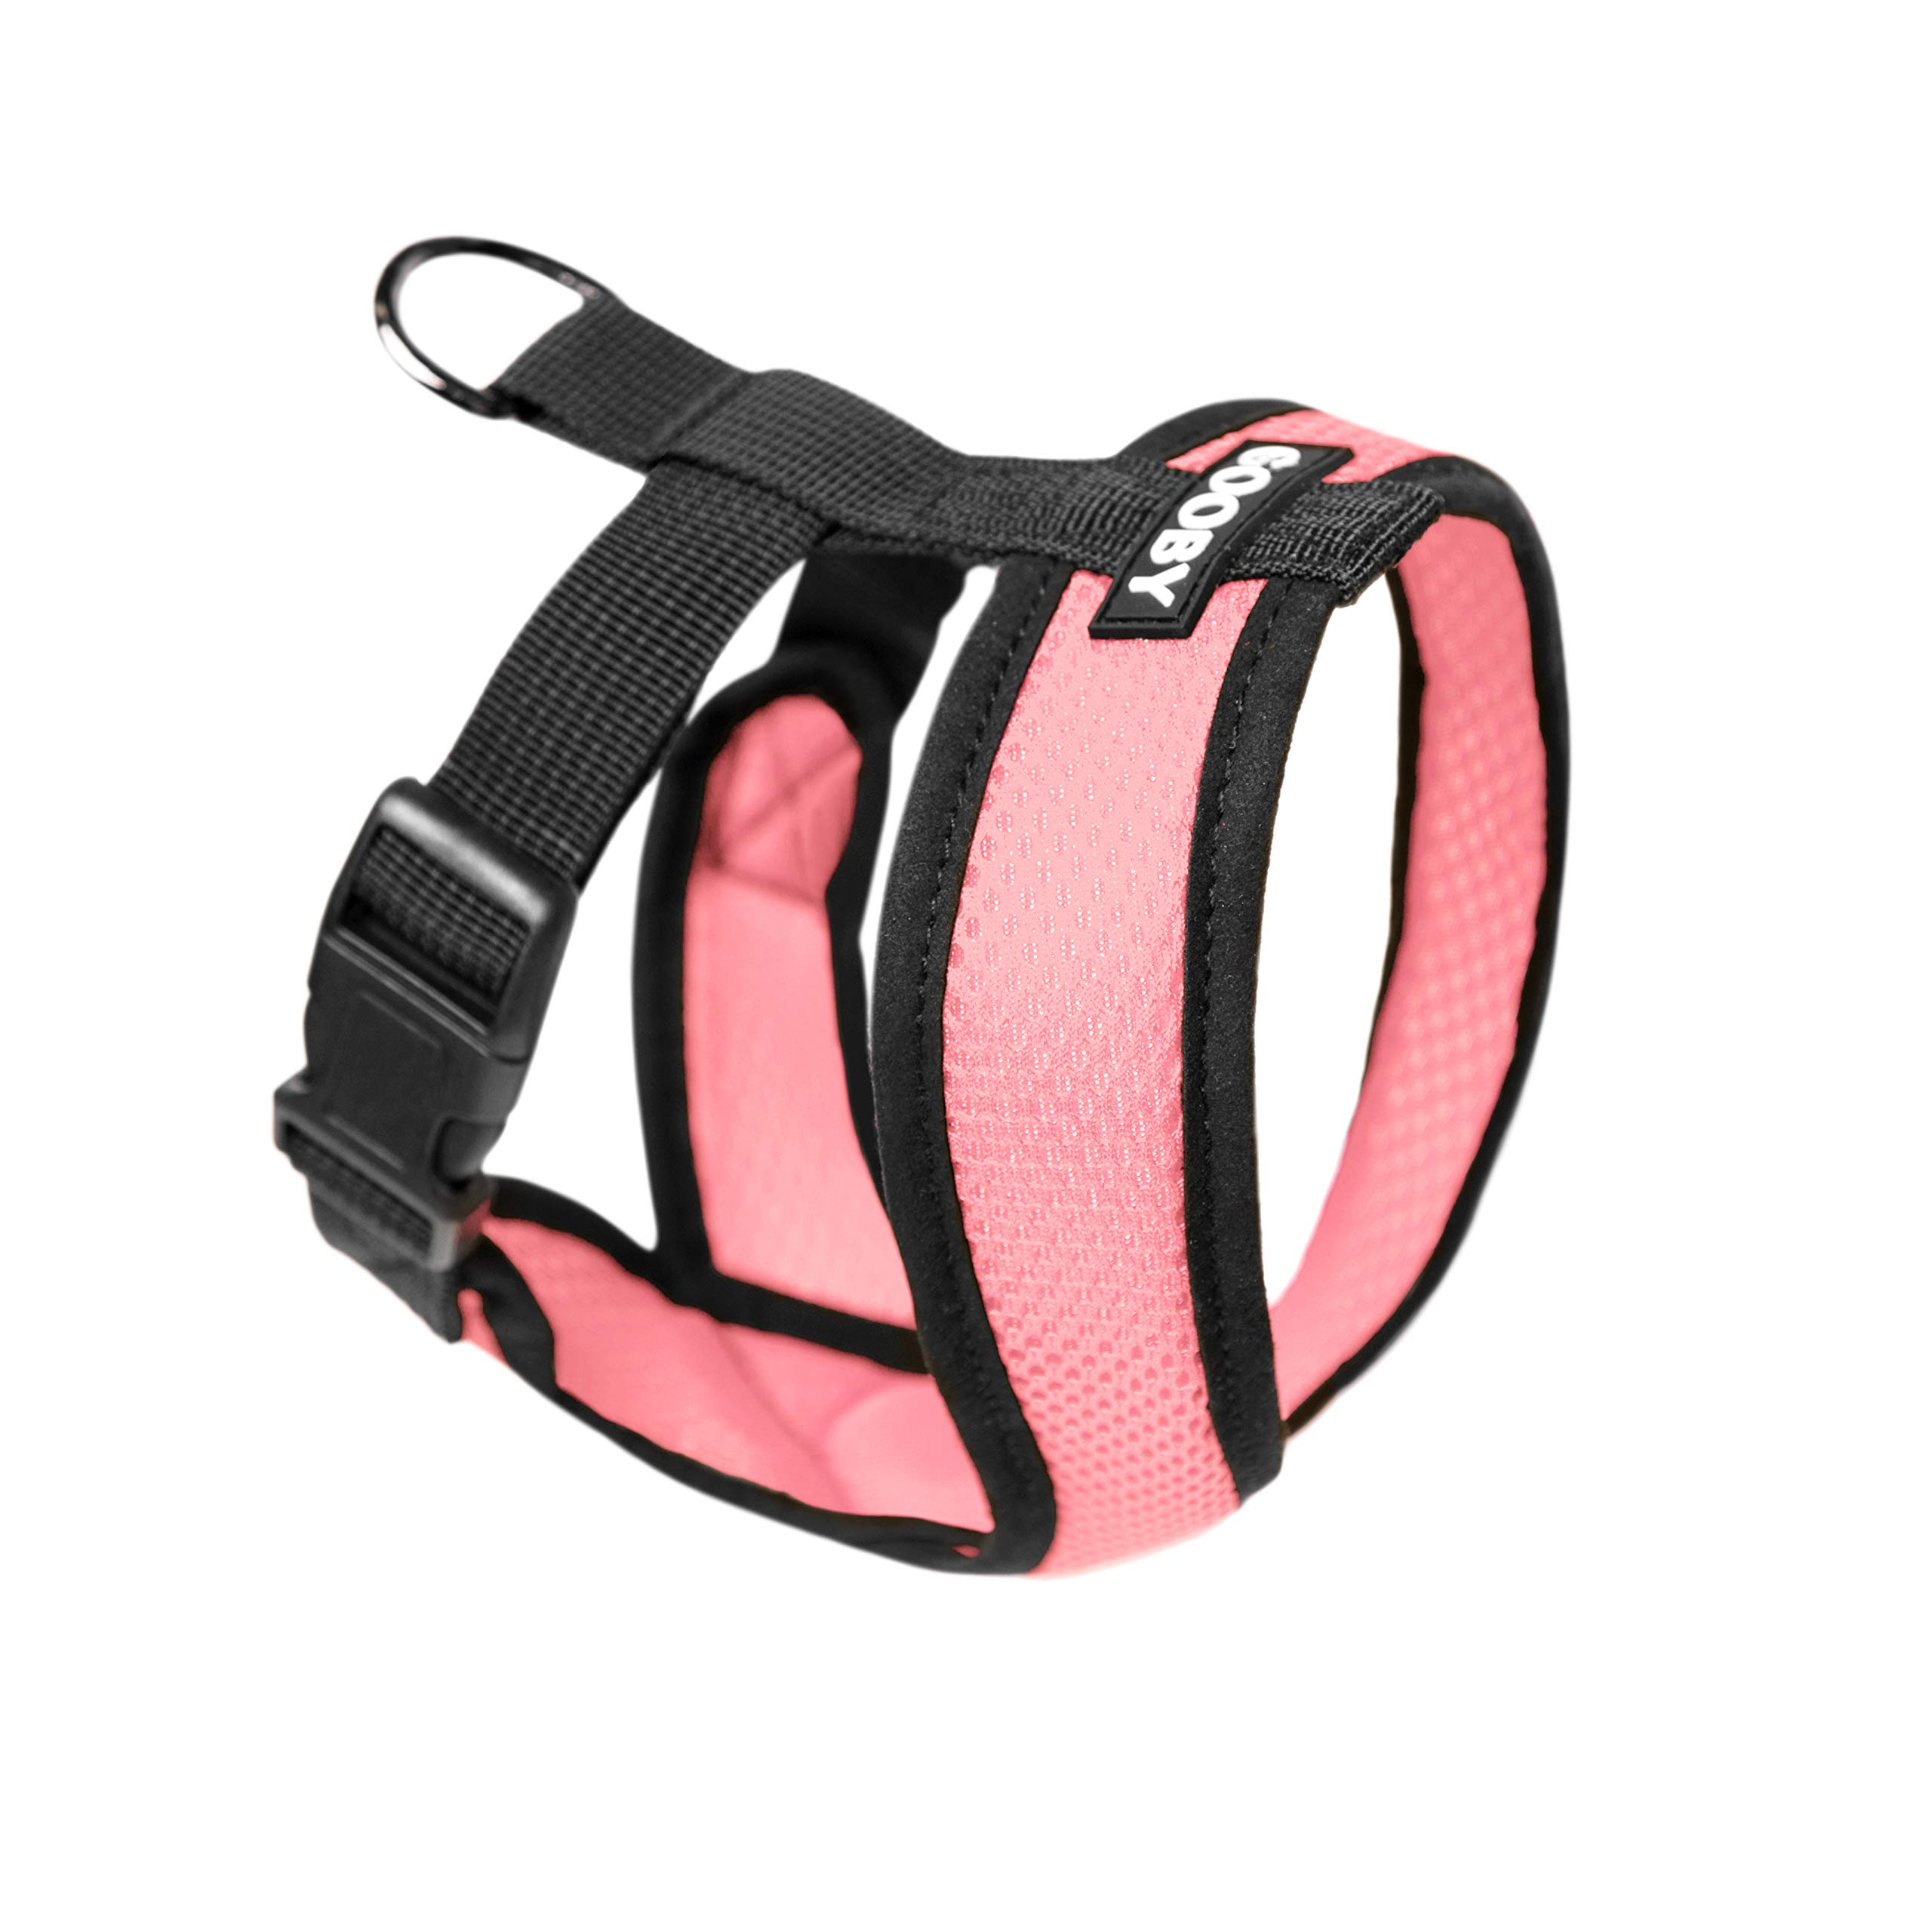 Gooby - Comfort X Head-in Harness, Choke Free Small Dog Harness with Micro Suede Trimming and Patented X Frame, Pink, Medium